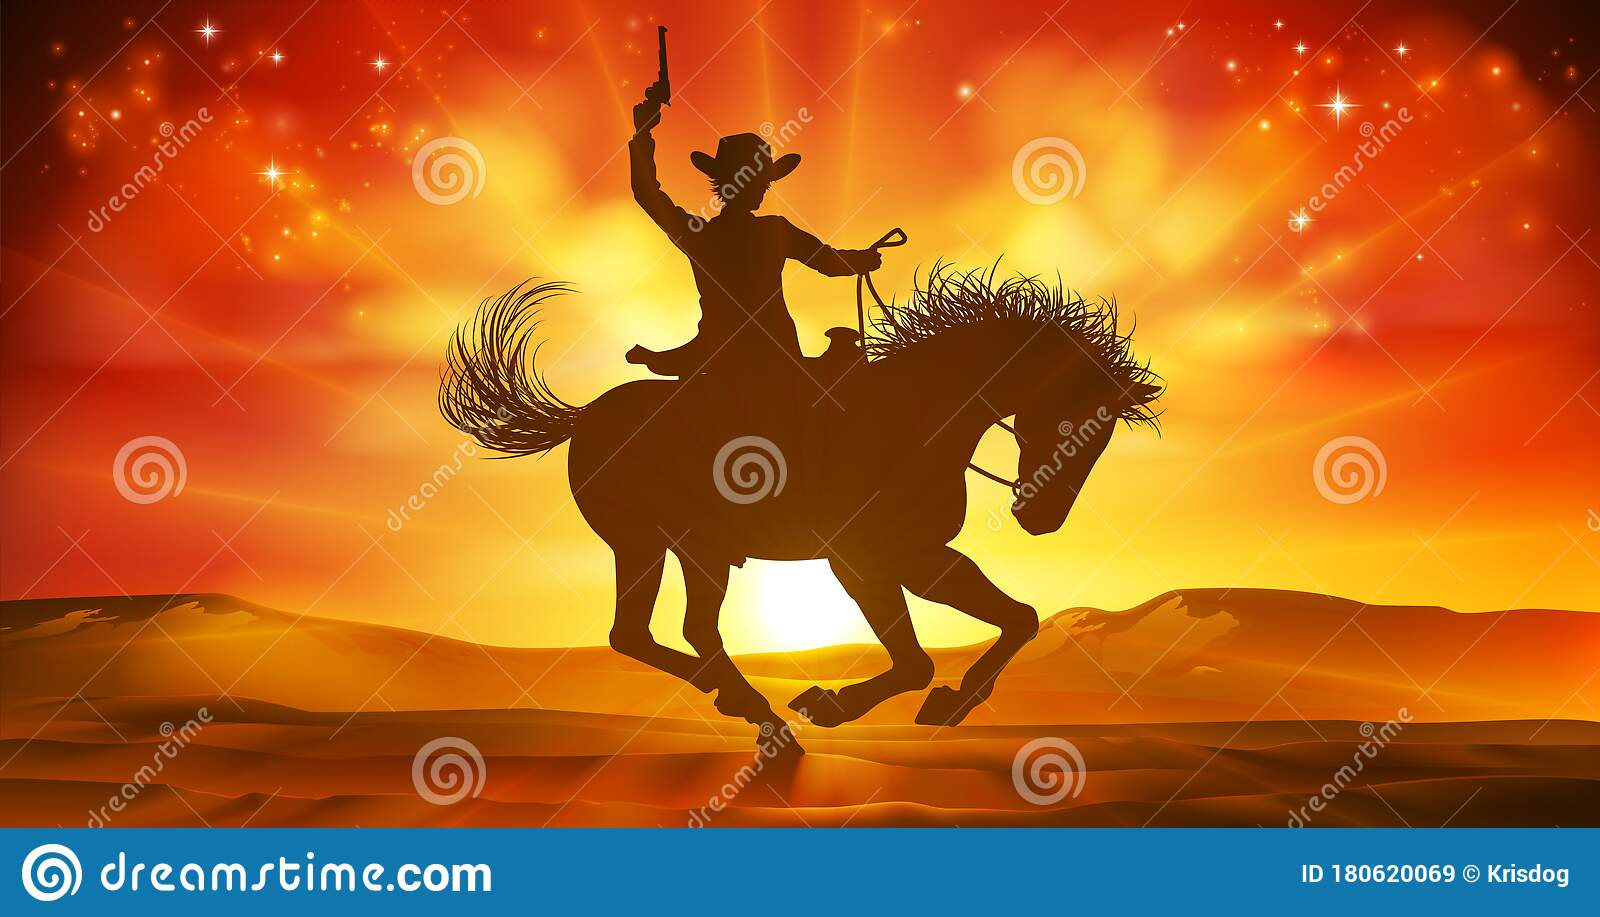 Cowboy Riding Horse Silhouette Sunset Background Stock Vector Illustration Of Holding Pistol 180620069